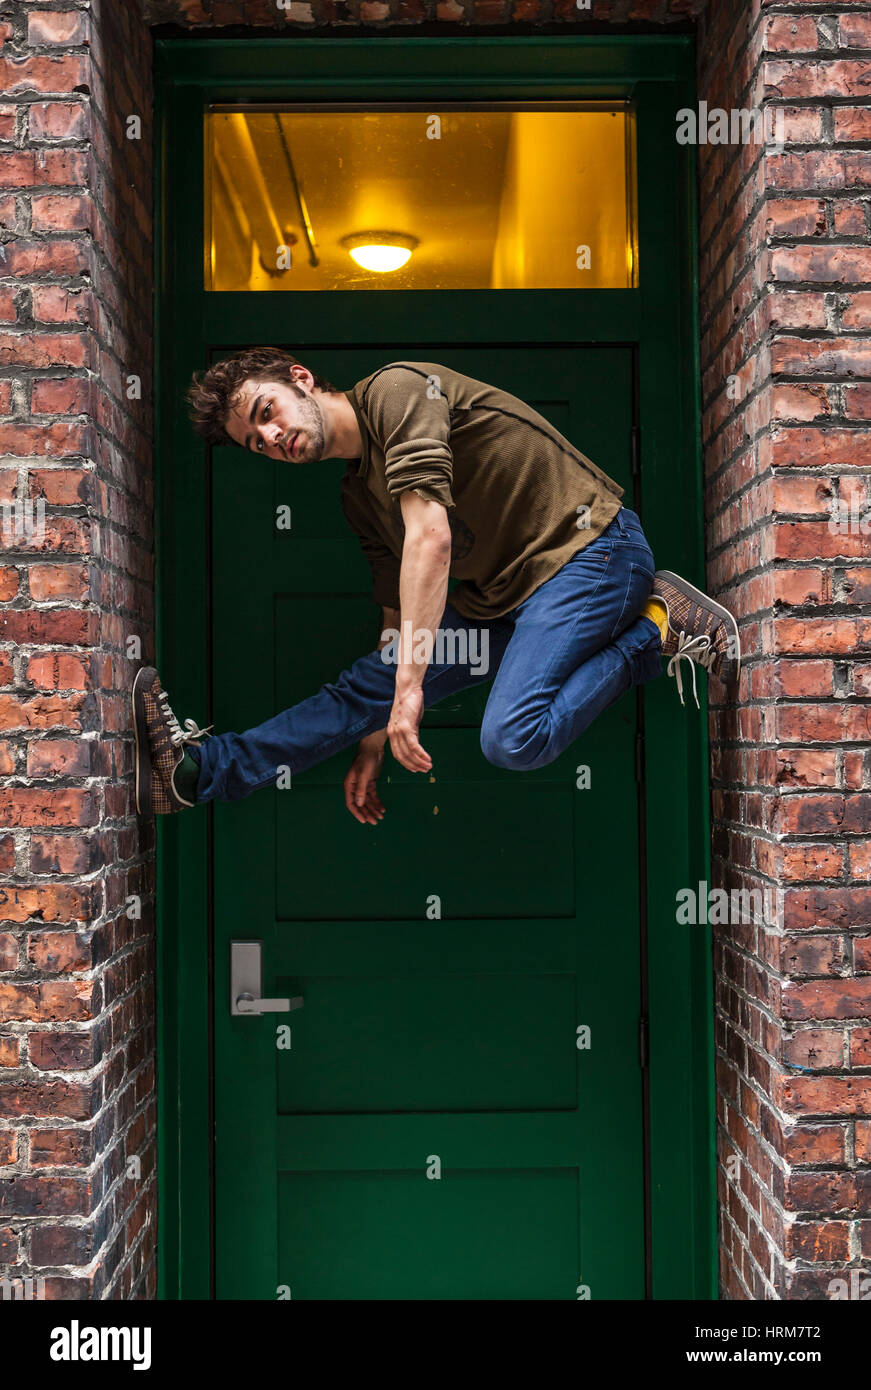 A portrait of a young man wedged up into a narrow doorway. - Stock Image